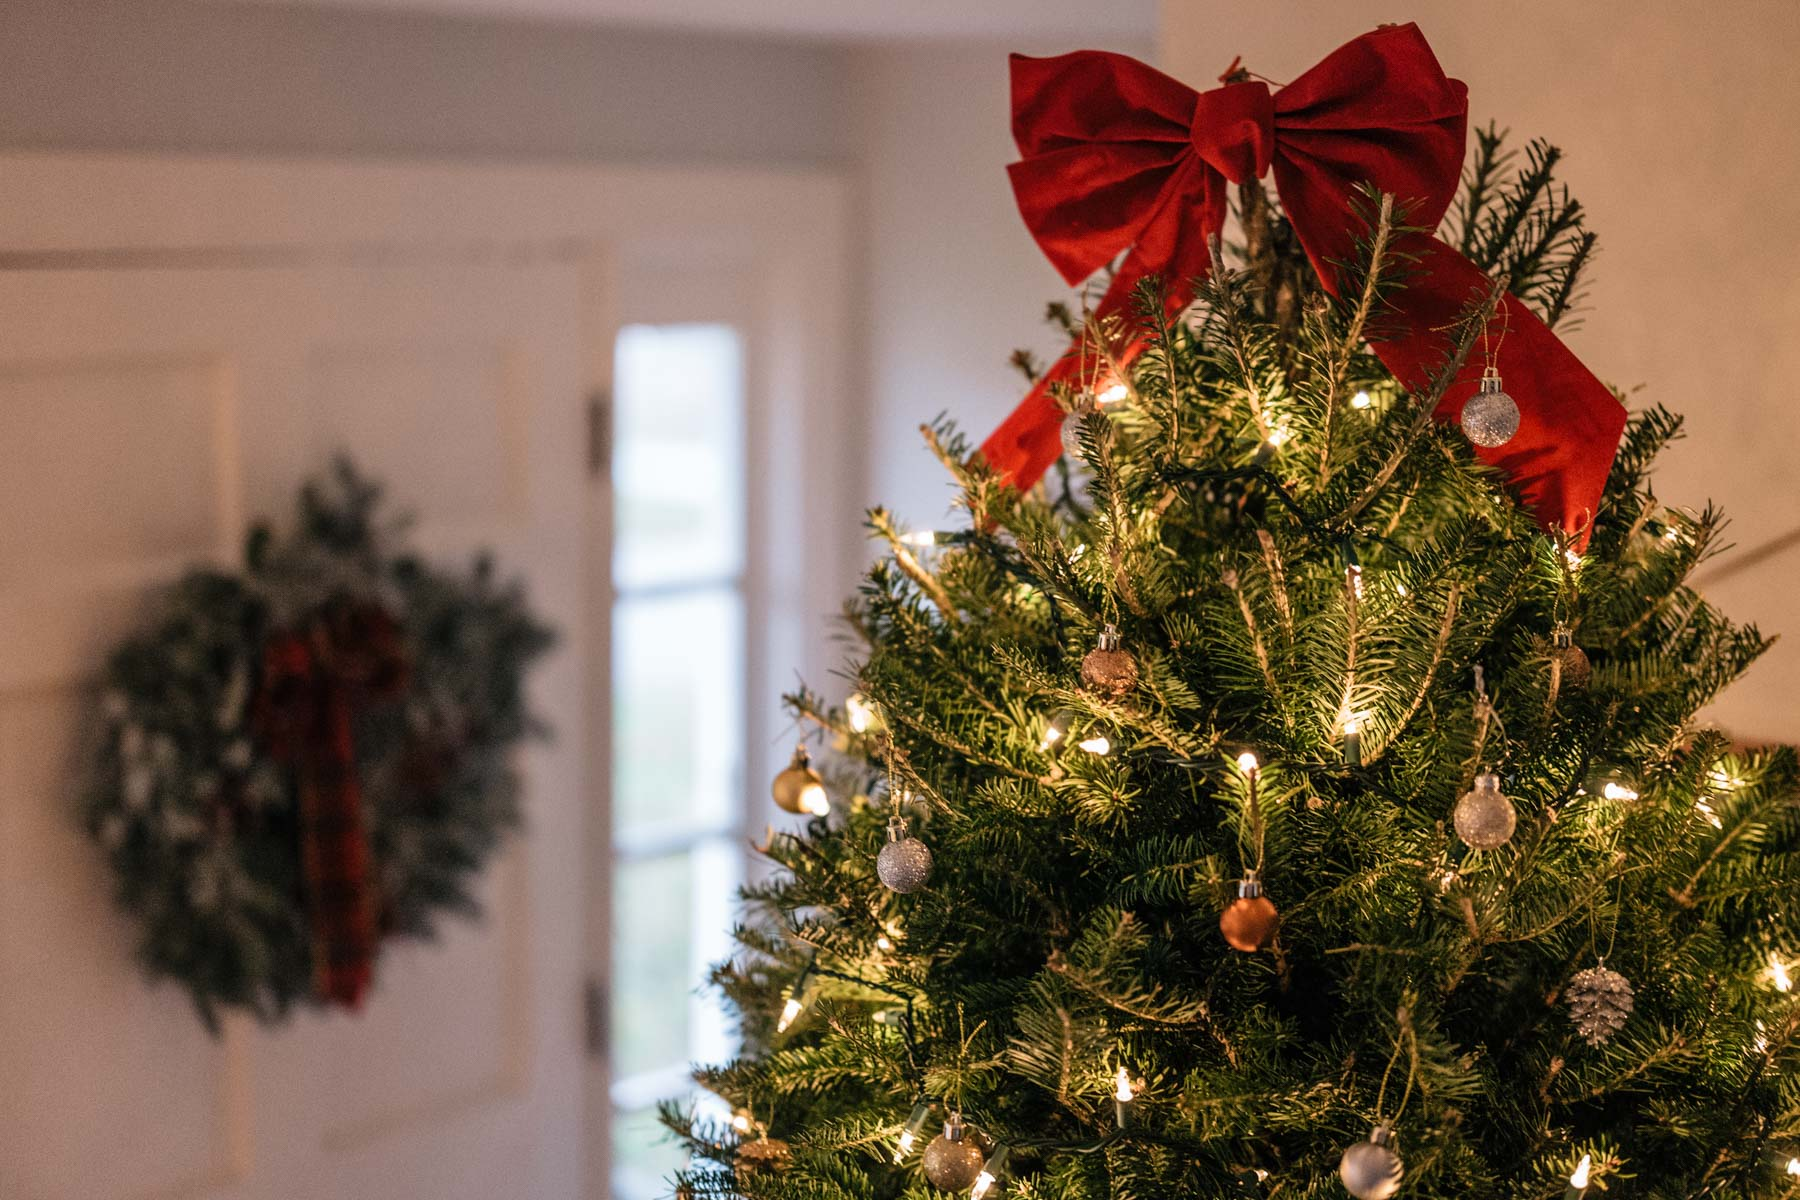 Jess Ann Kirby tops her Christmas tree this year with a big red bow